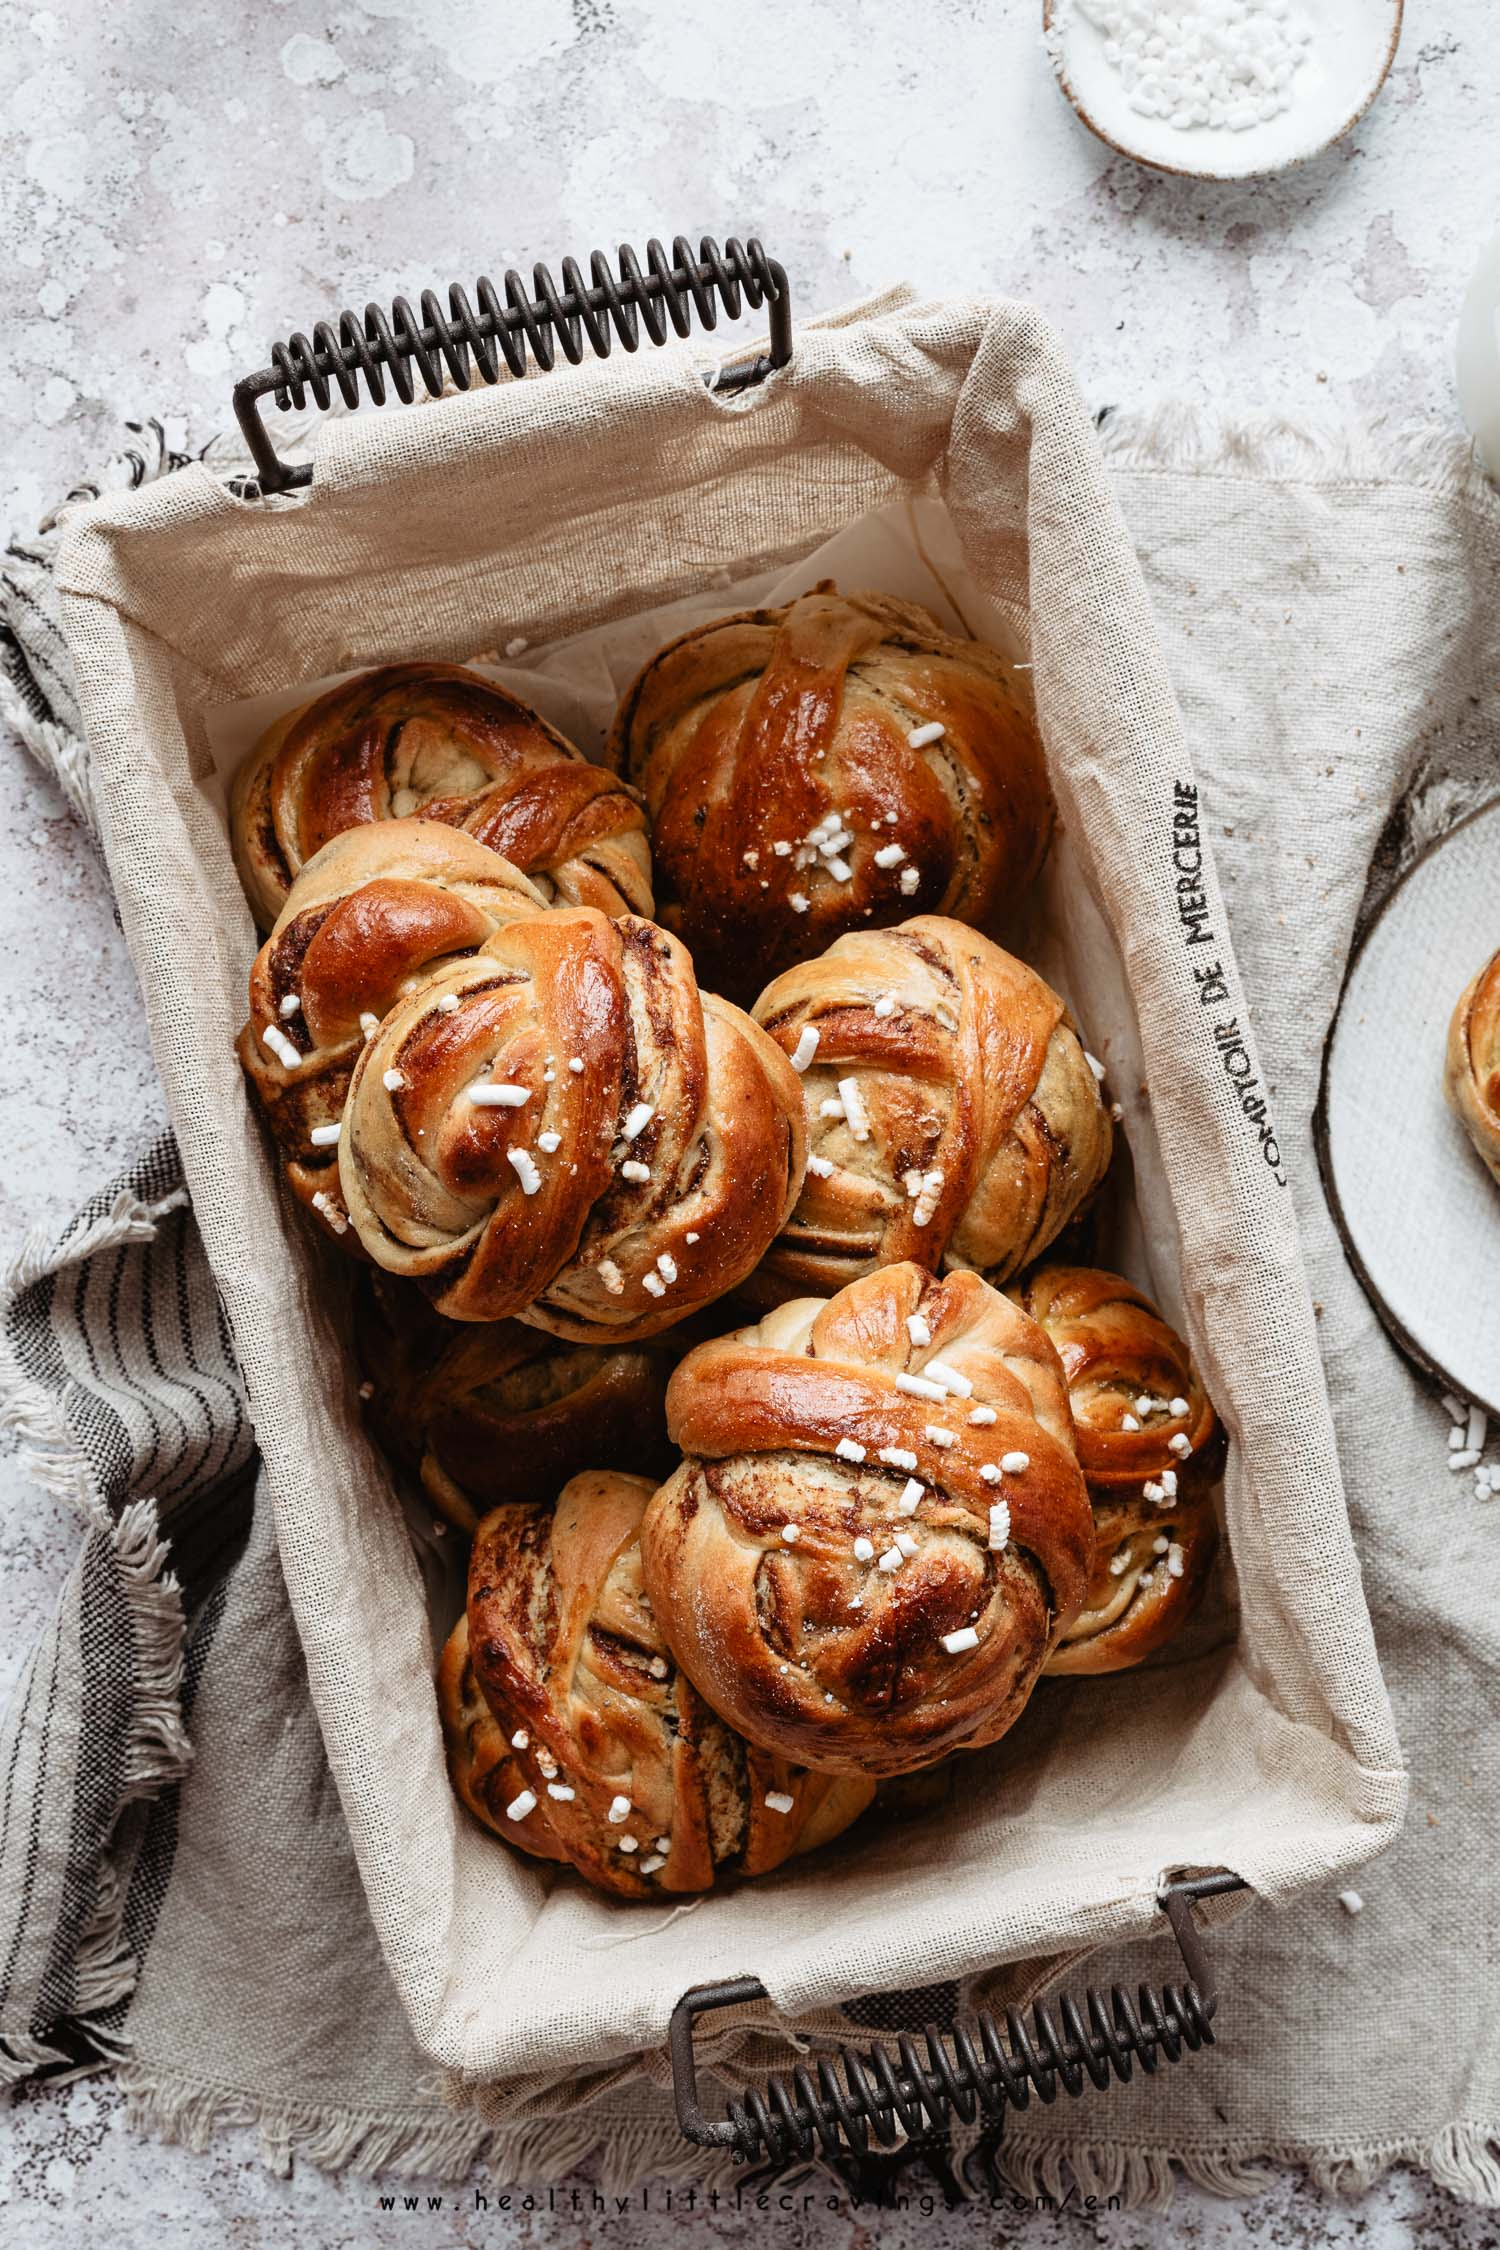 Swedish cardamom buns into a basket